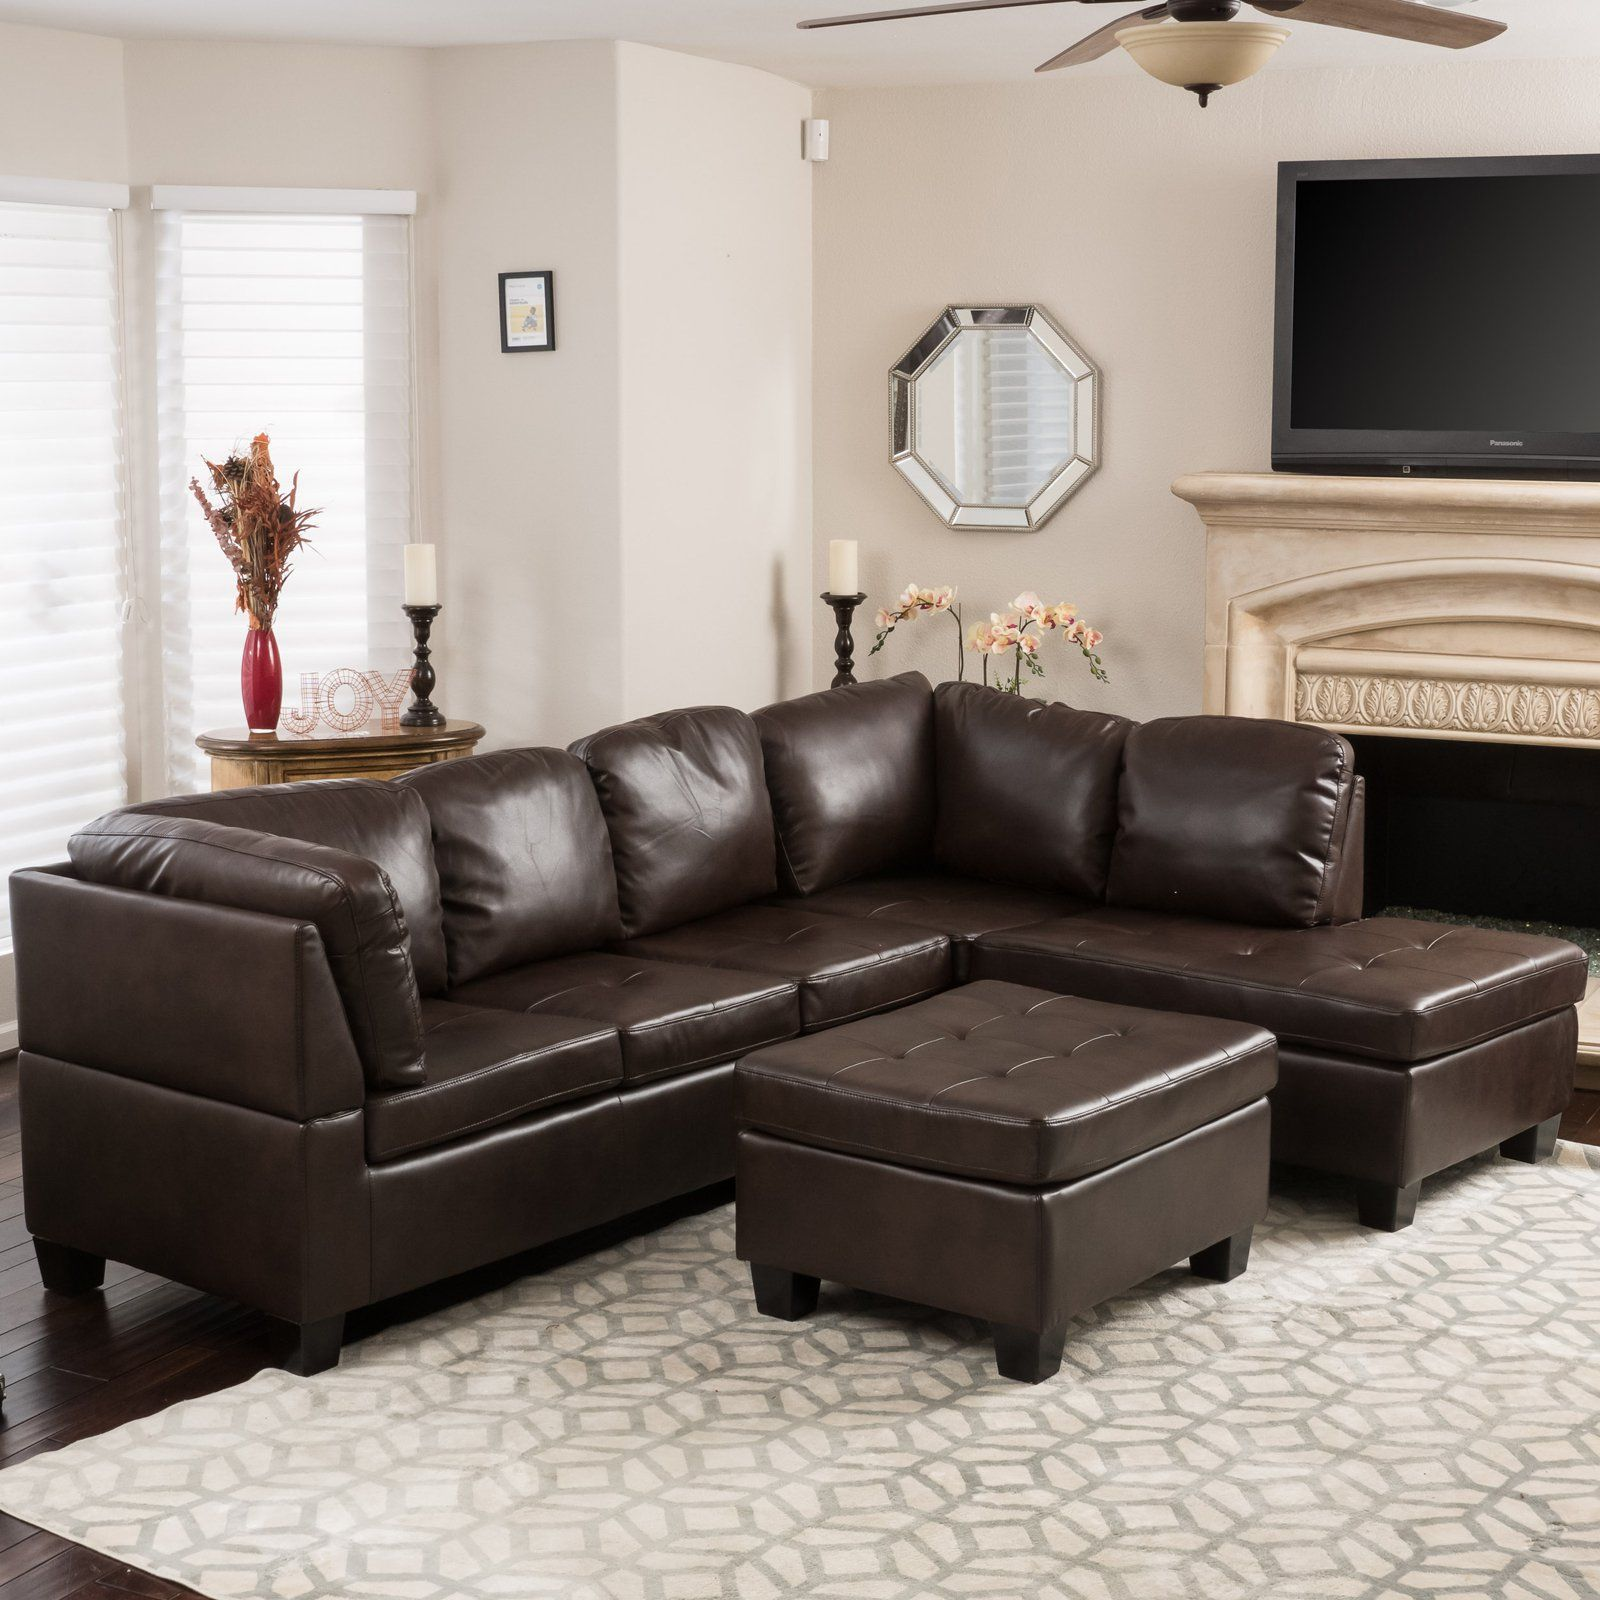 2293 Best Images About Leather Sofas And Living Room: Evan 3 Piece Leather Sectional Sofa